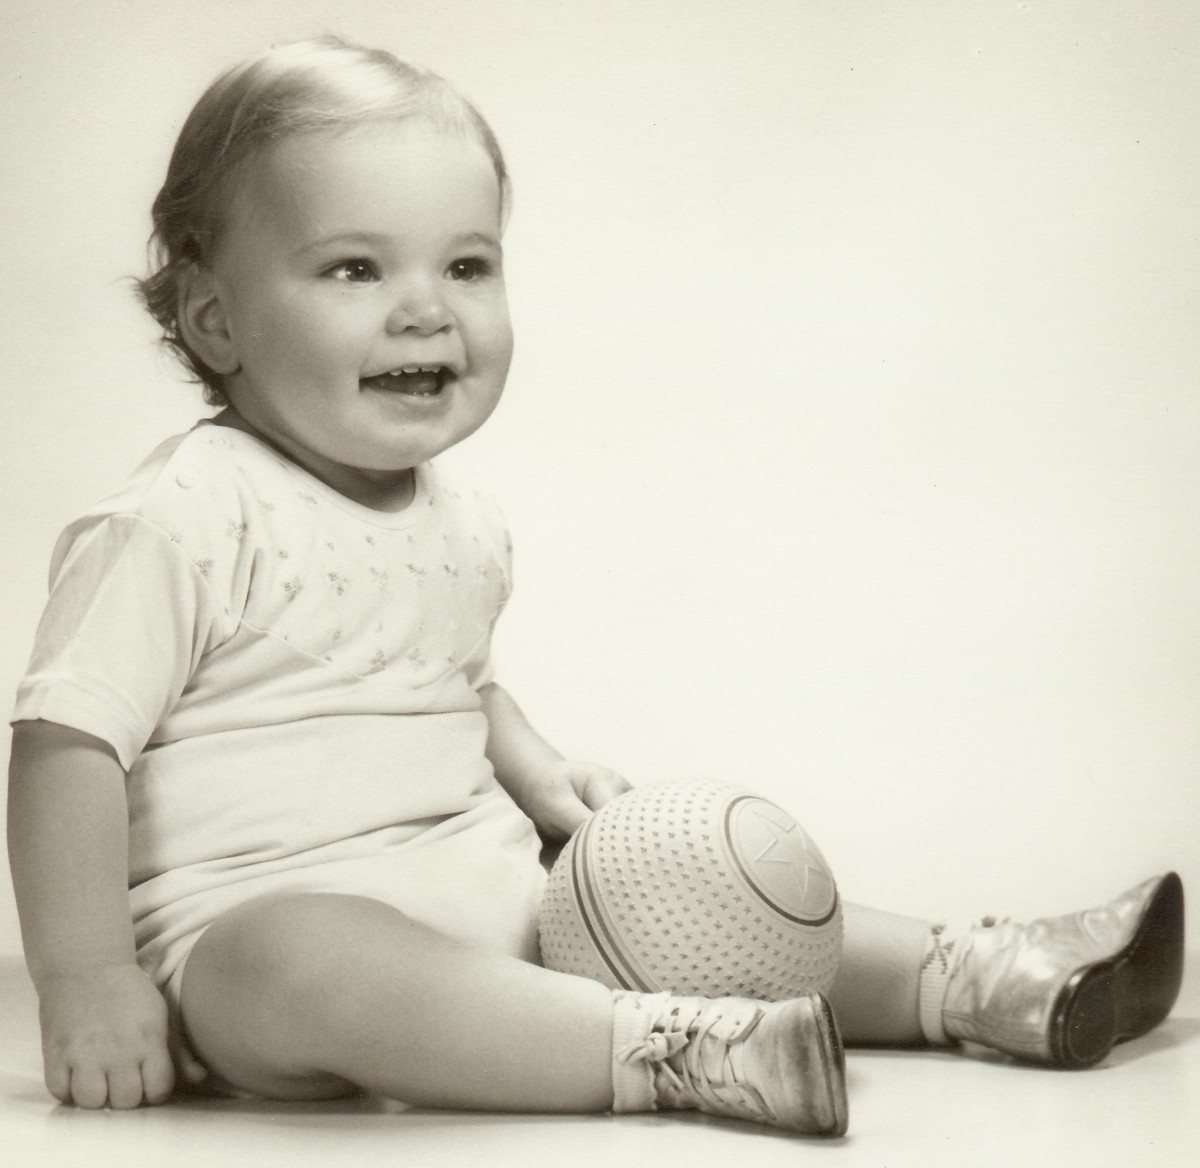 My youngest brother Jimmy as he was called back then.